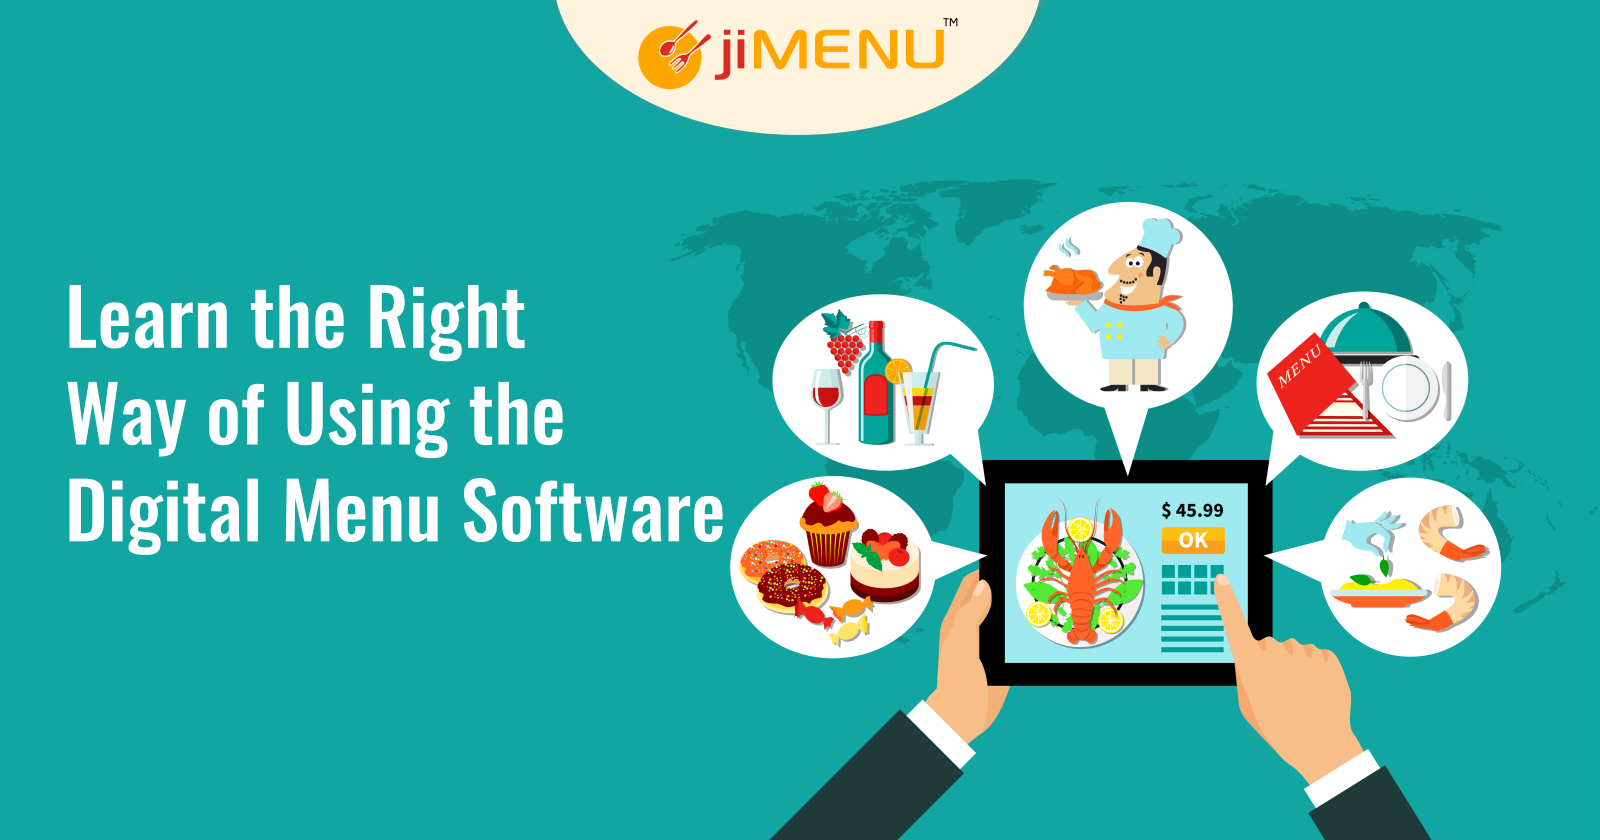 Learn the Right Way of Using the Digital Menu Software